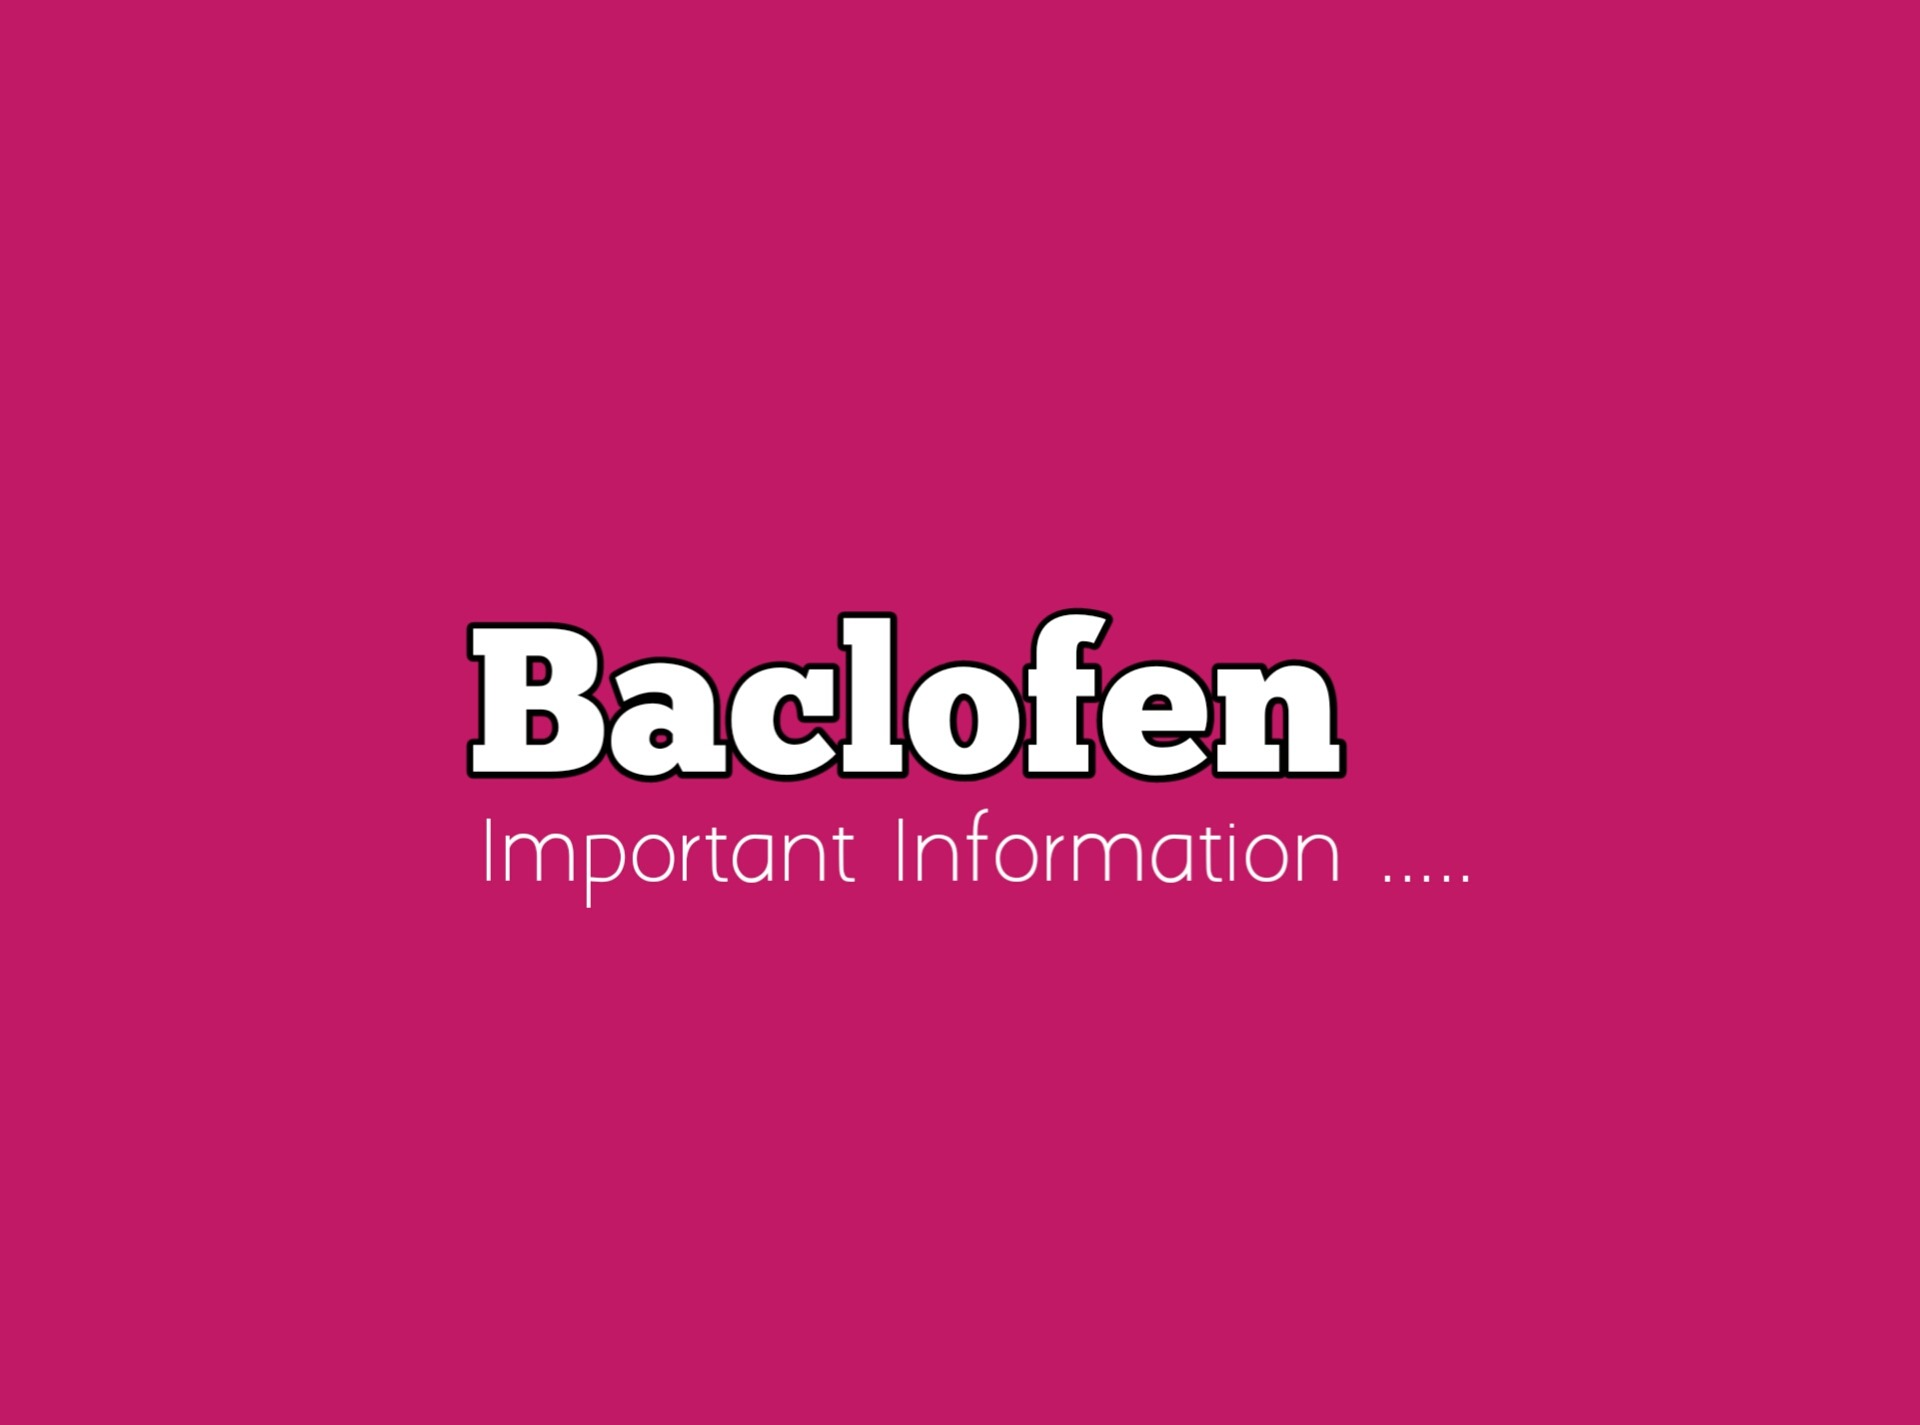 Important Information About Baclofen